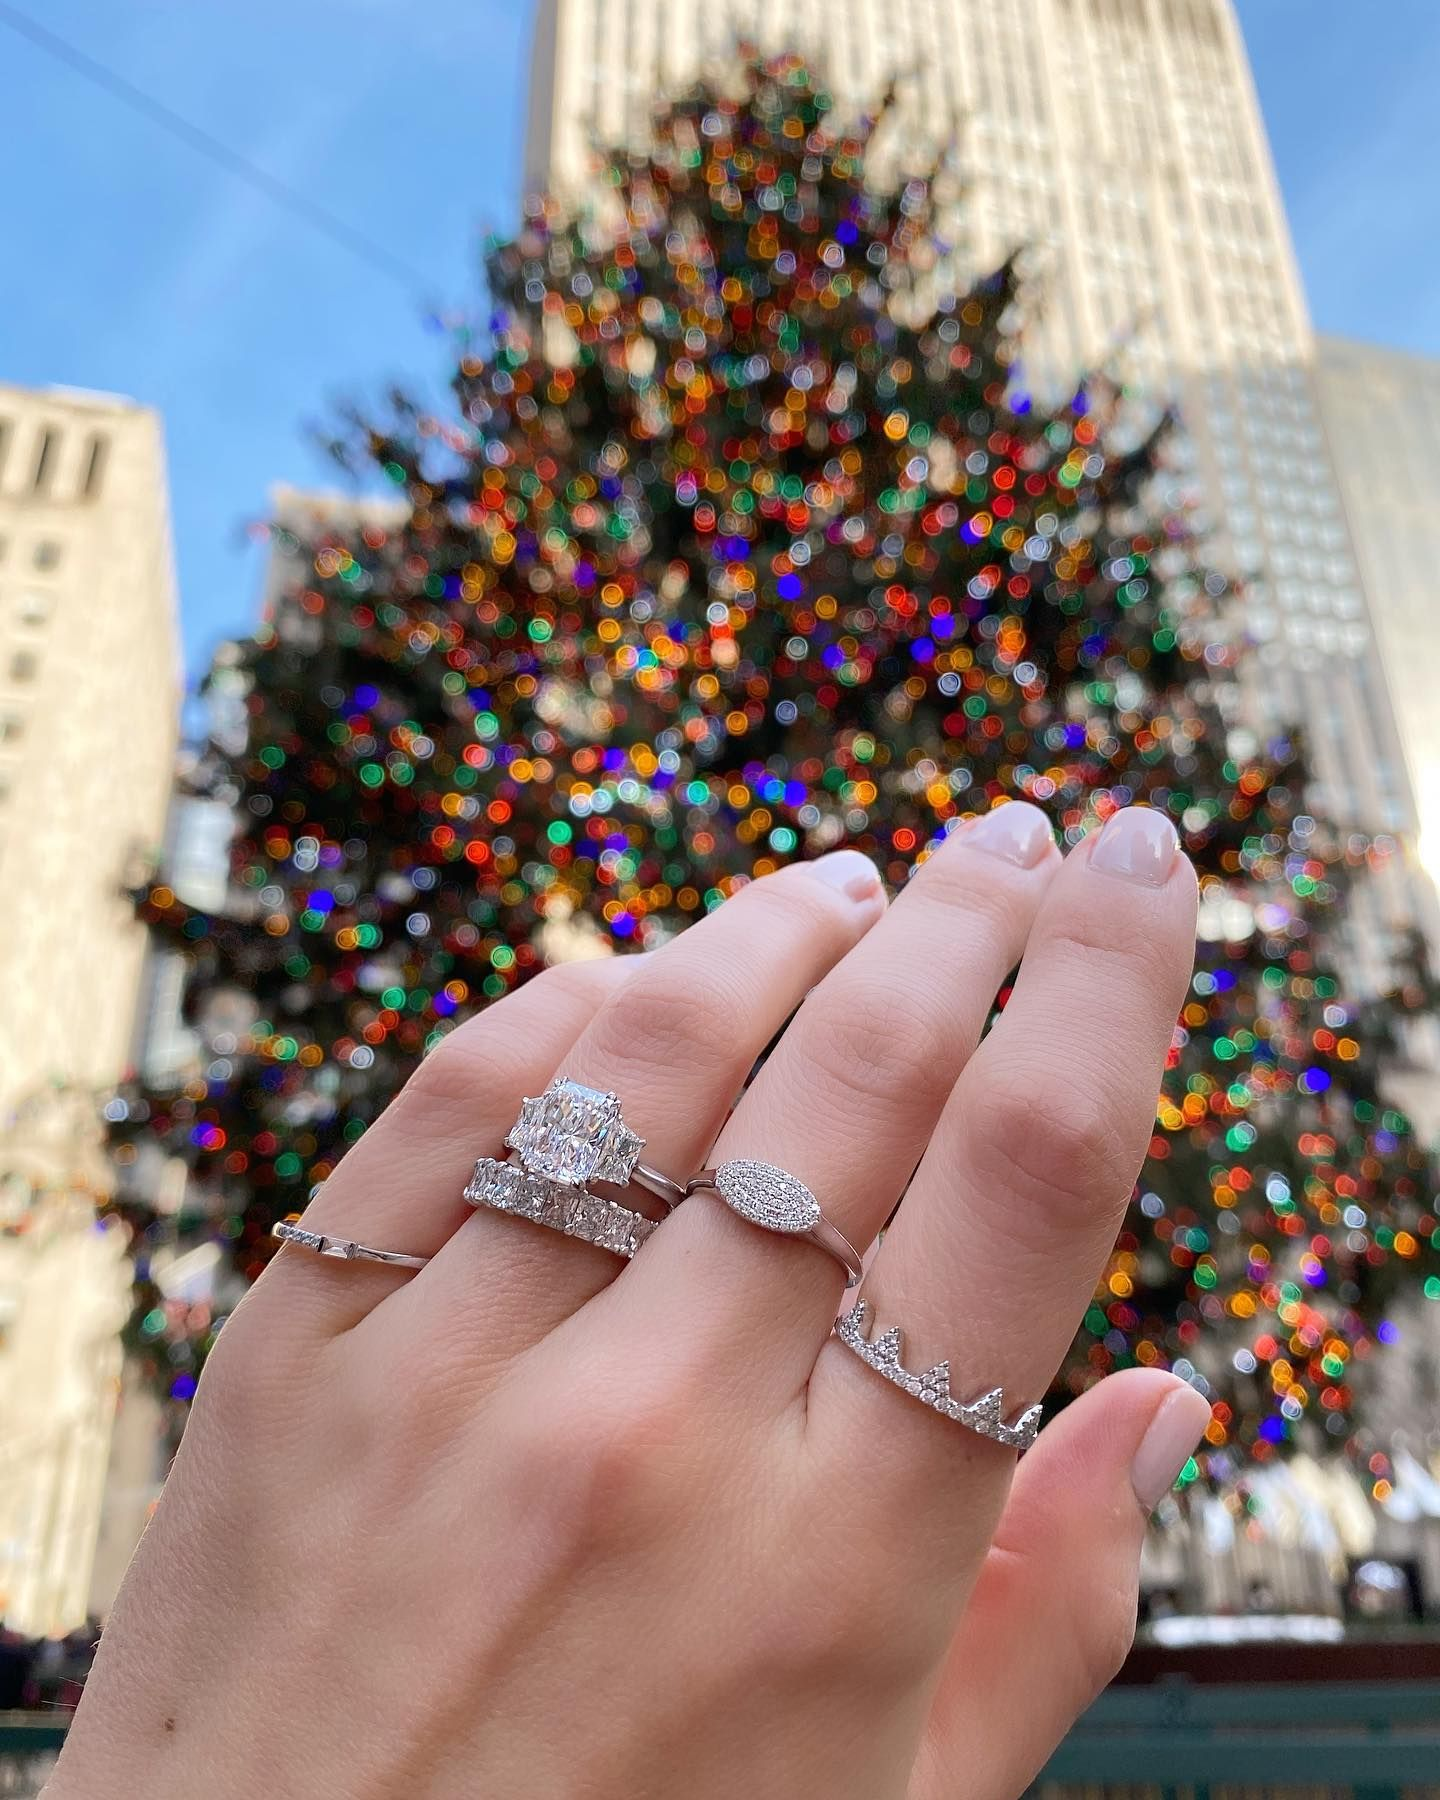 Oh what a beautiful sight 😍🎄💍 There's nothing like Rockefeller center during this time of year! Tap for the bling 💎 & comment your favorite places in NYC to get into the holiday spirit! ⬇️🎁 - Radiant cut engagement ring style # SOR-17470 - #laurenbjewelry #radiantcut #rockefellerchristmastree #christmasinnyc #threestonering